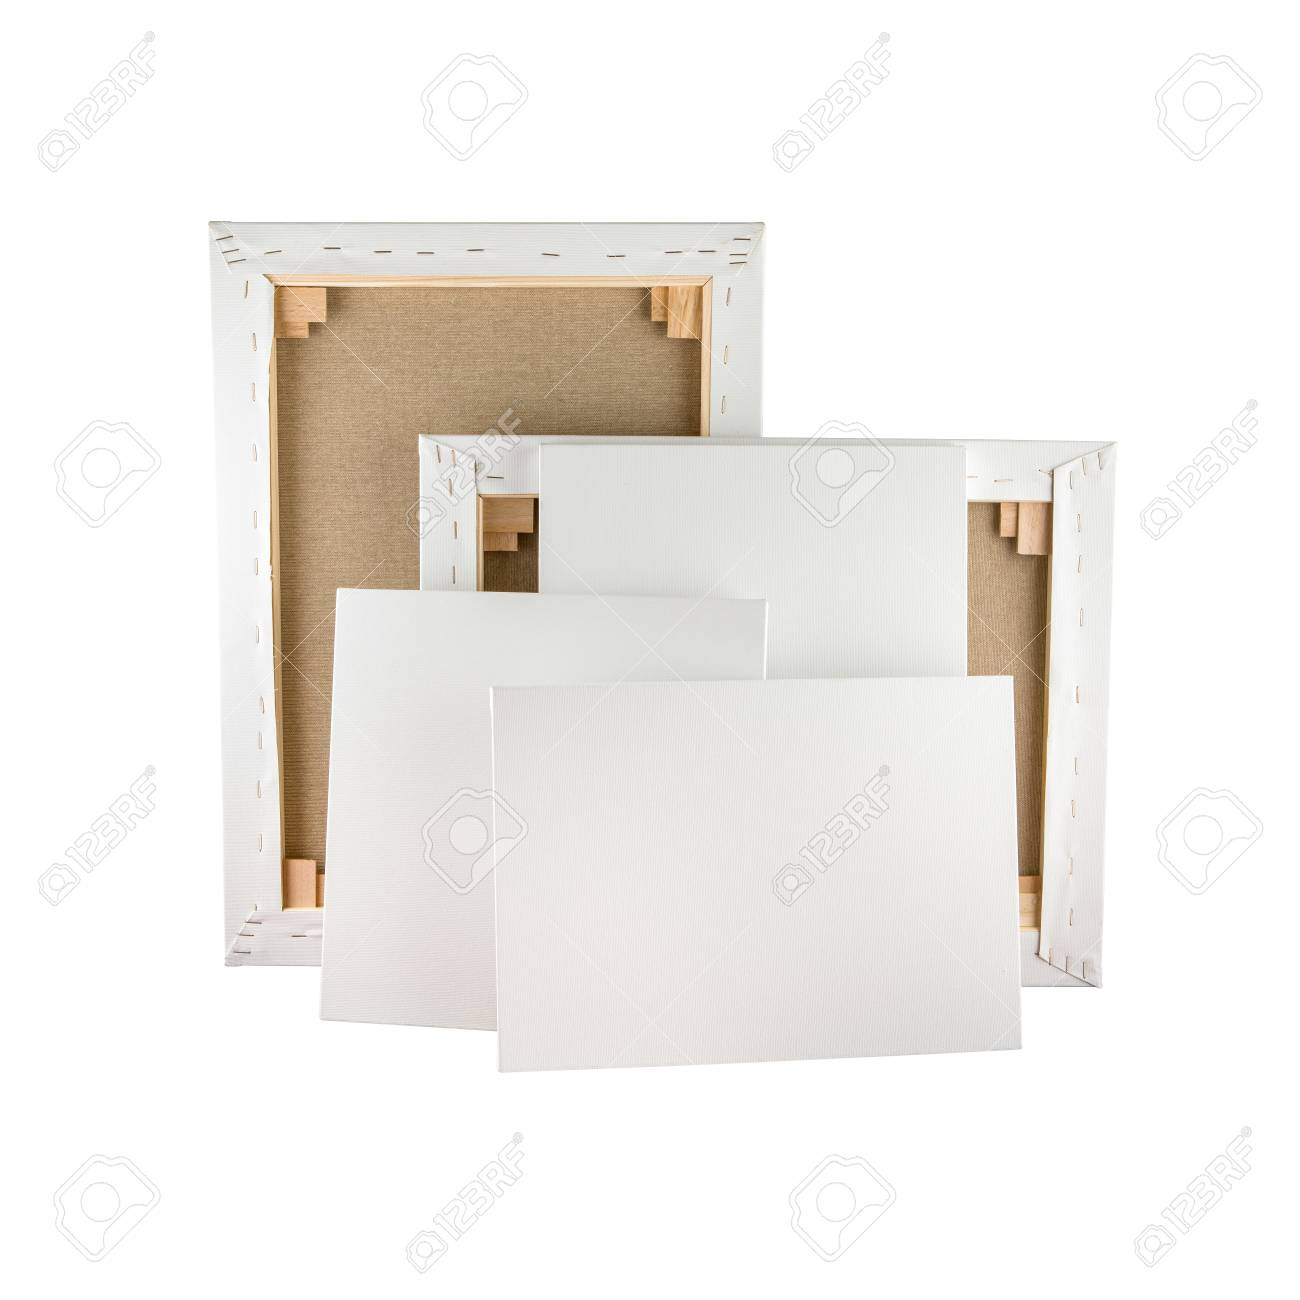 Gallery Wrapped Blank Canvas On Wooden Frame - Stretcher Bar.. Stock ...